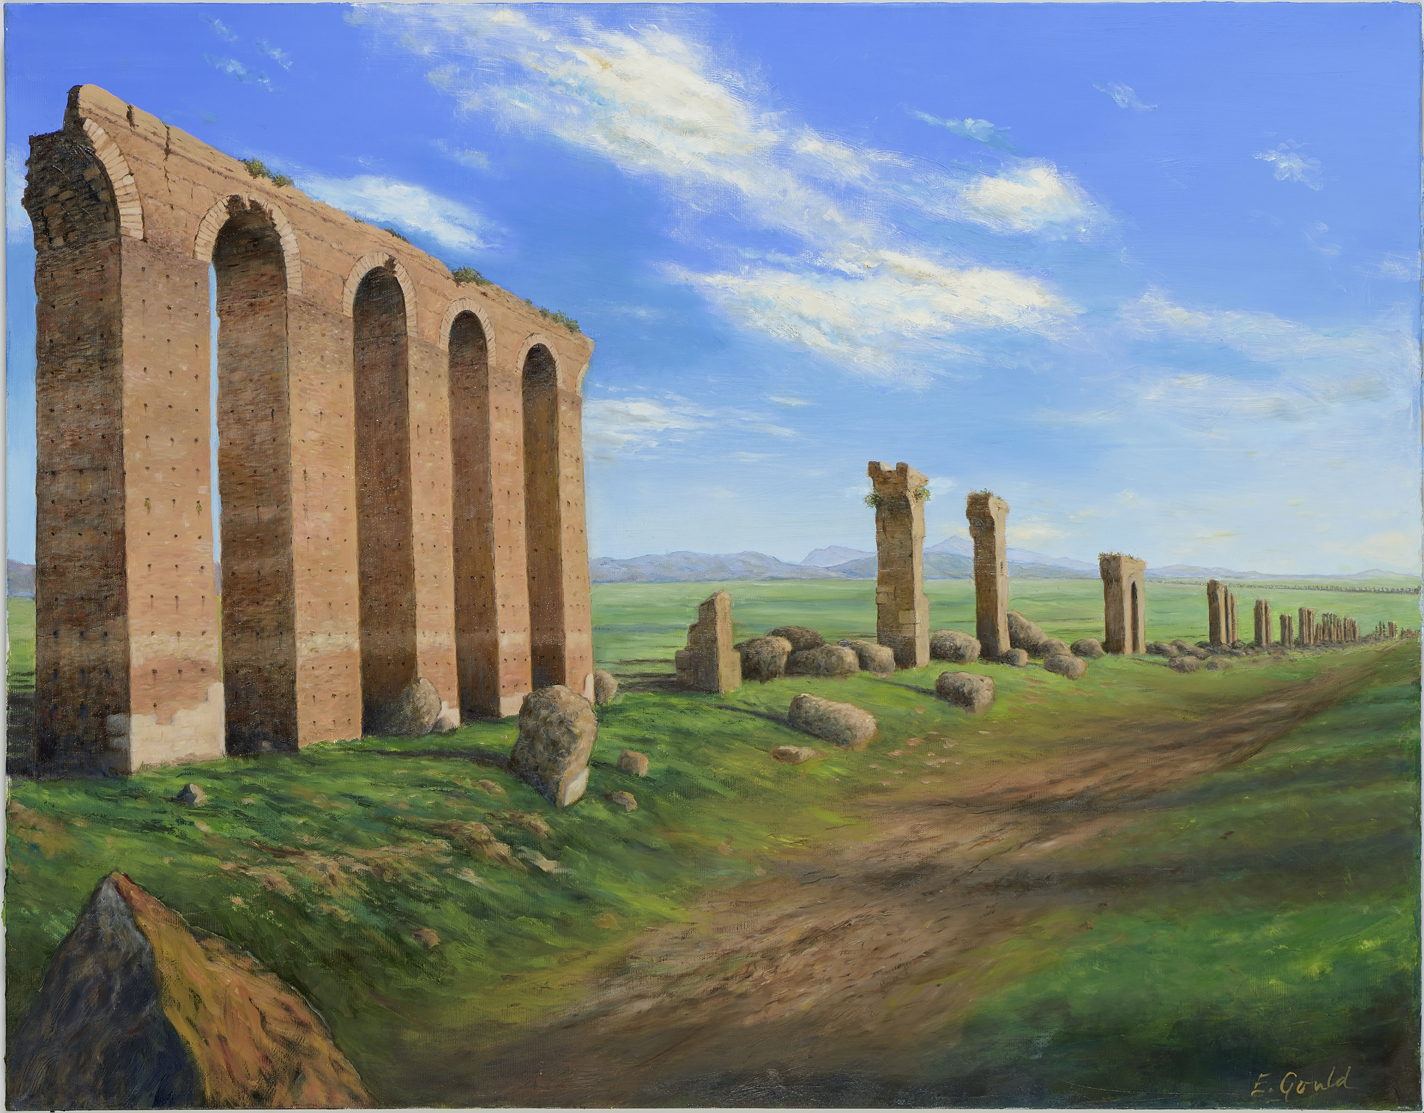 Zaghouan aqueduct - One of the many vestiges of the Roman empire in North Africa.